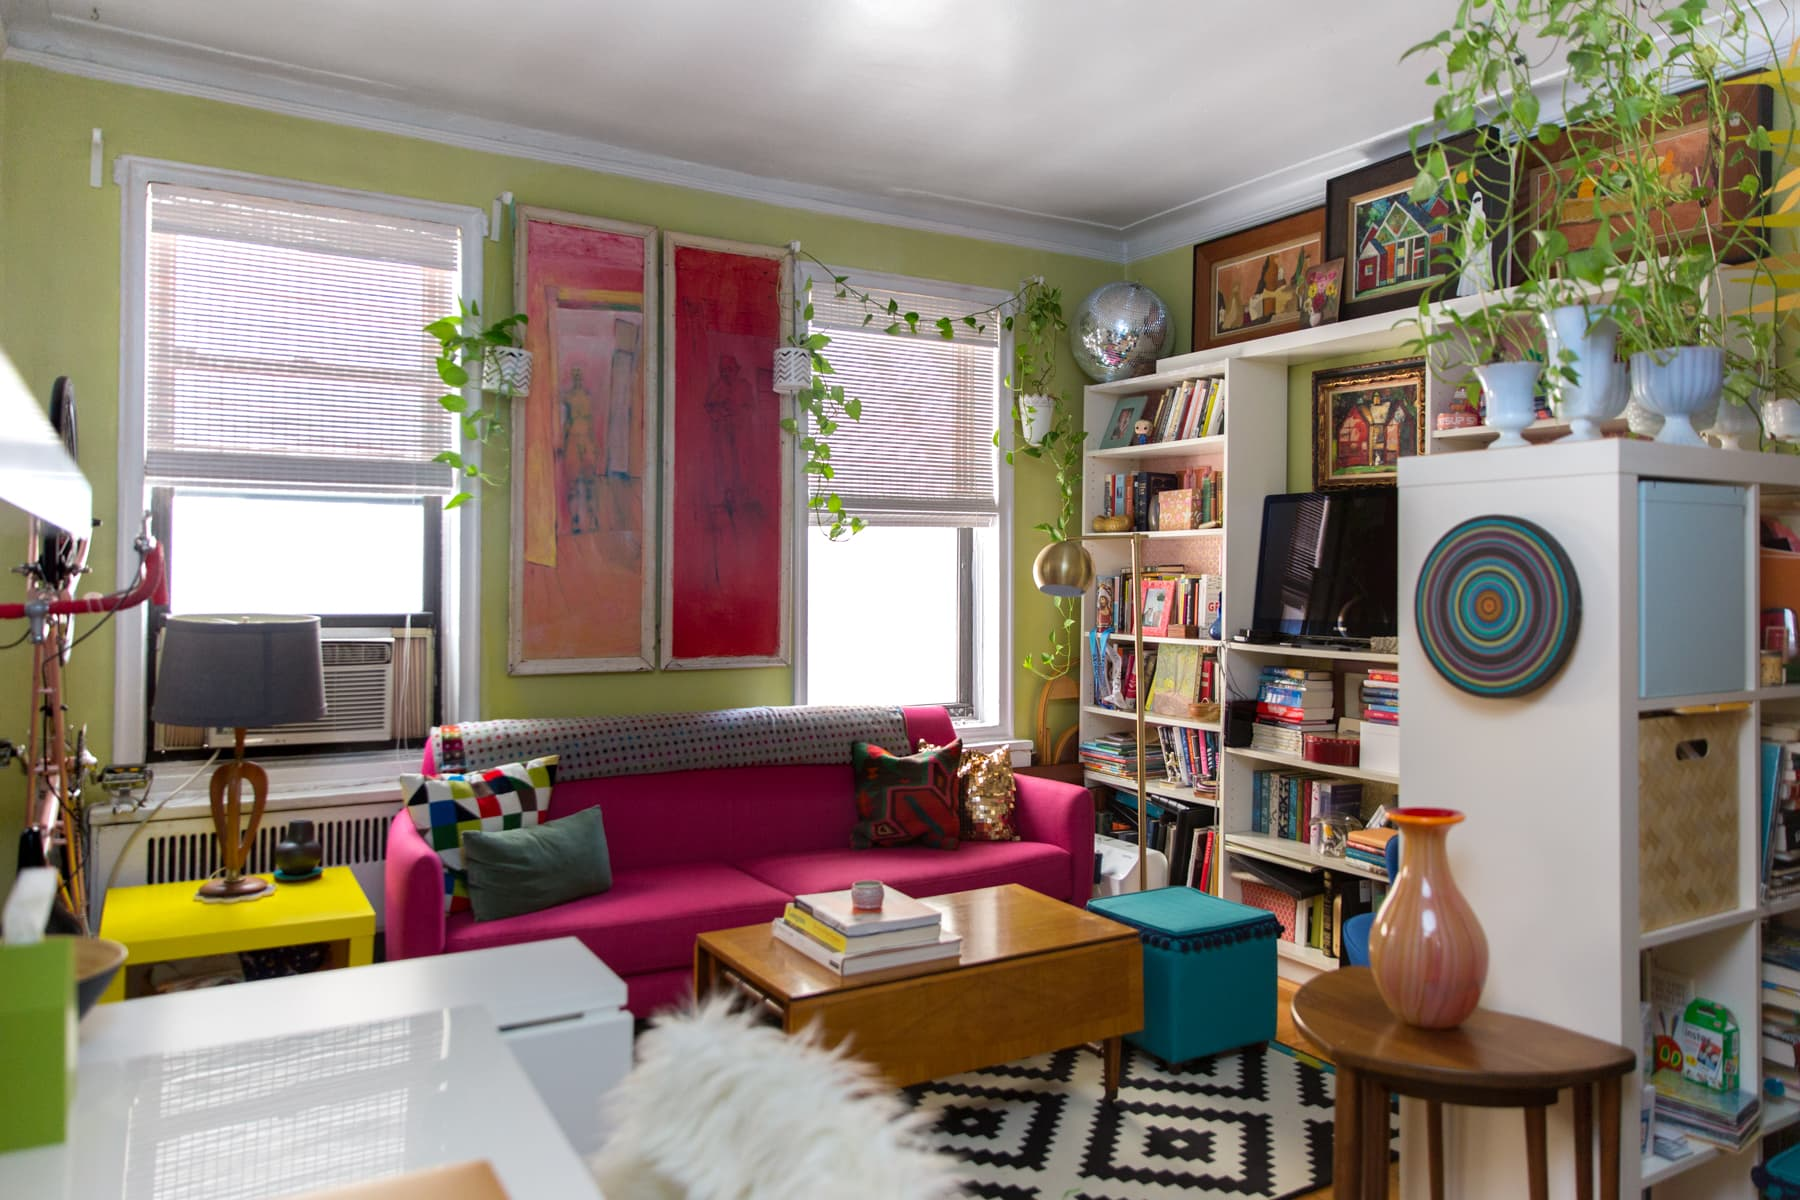 A Tiny 300-Square-Foot Studio Apartment Is a Jewel Box: gallery image 1